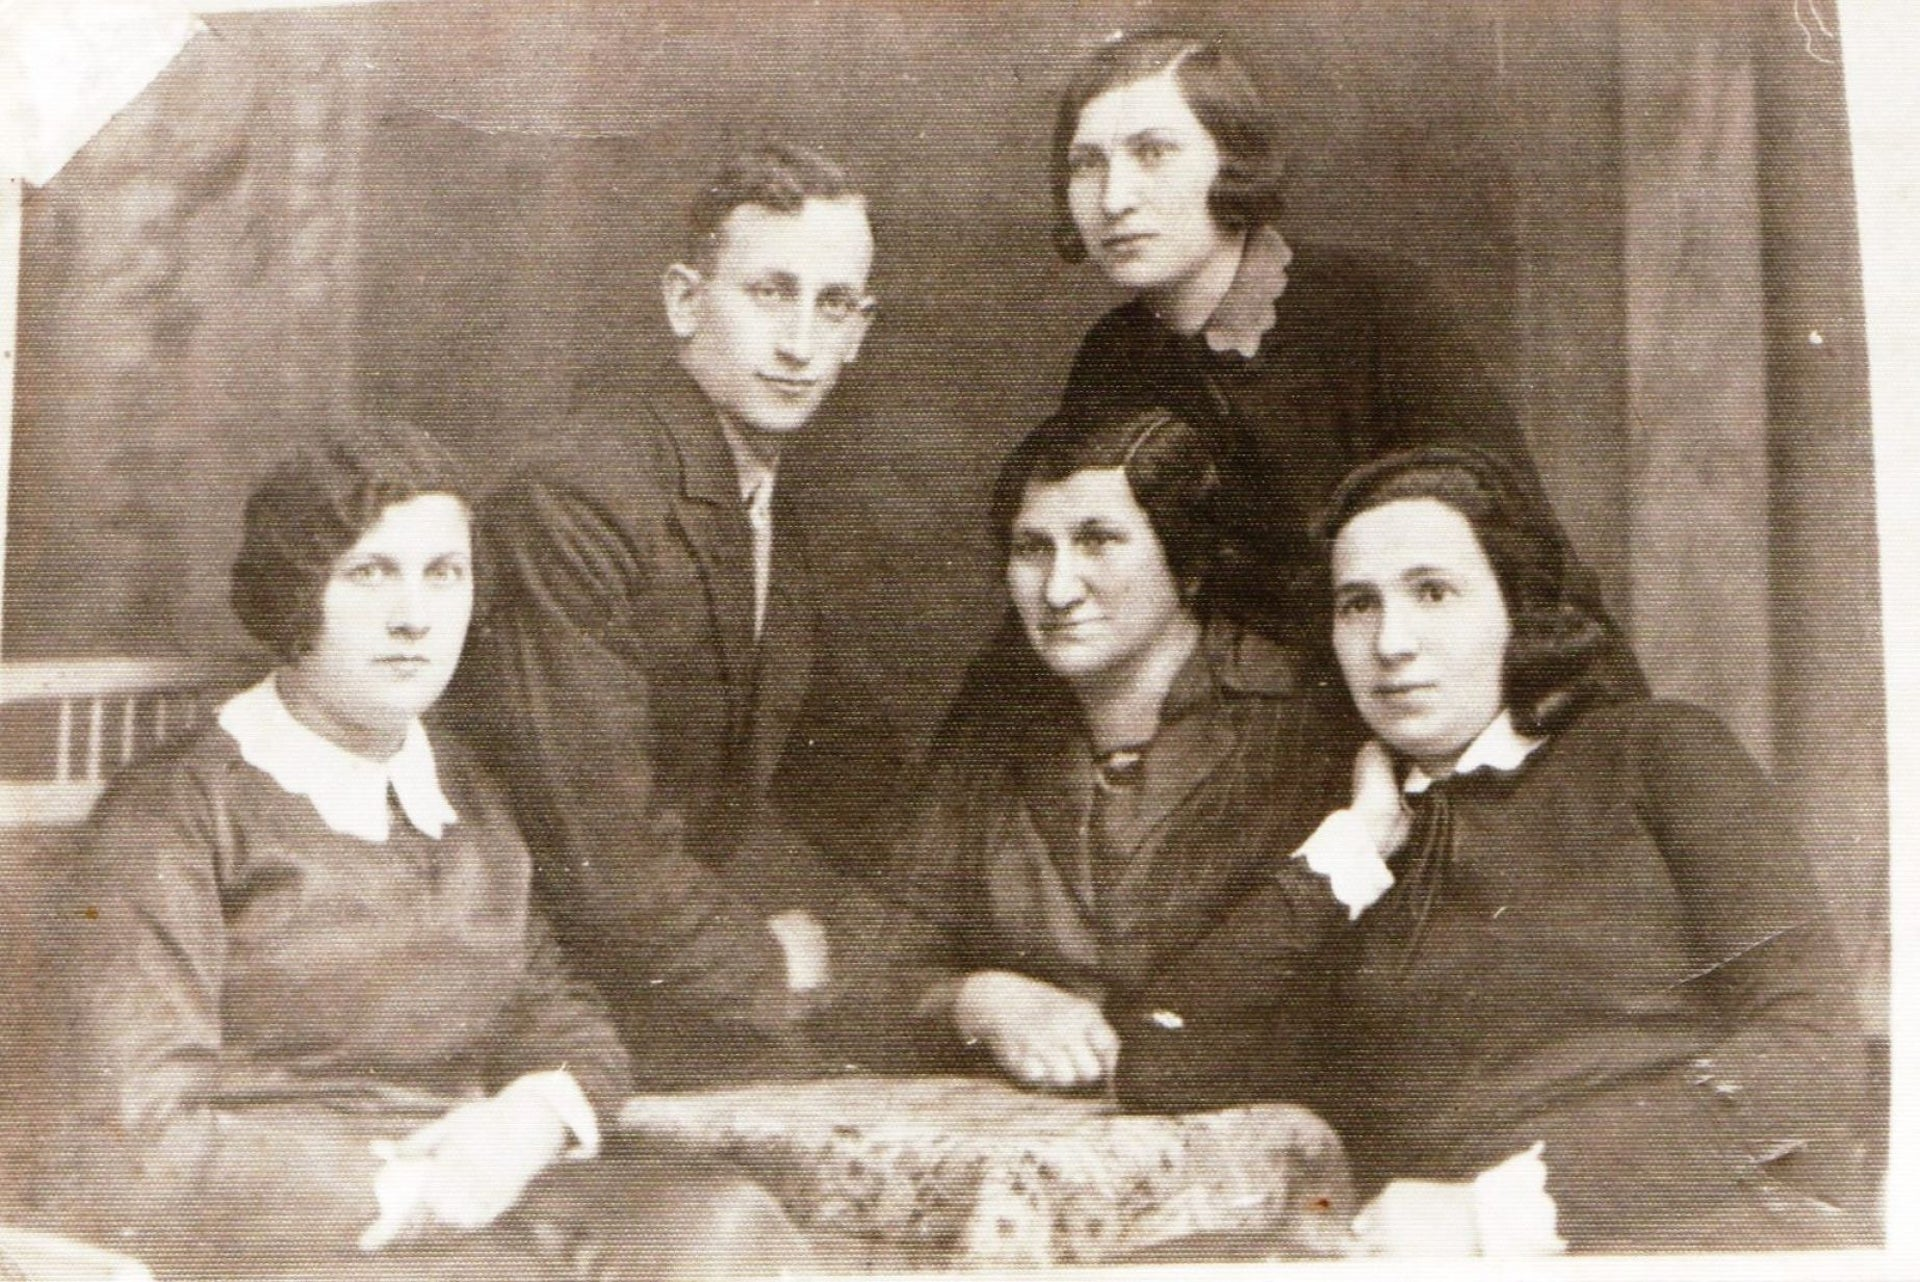 Family of Rachel Sha'anan, with her mother standing, in their home in Poland in 1928